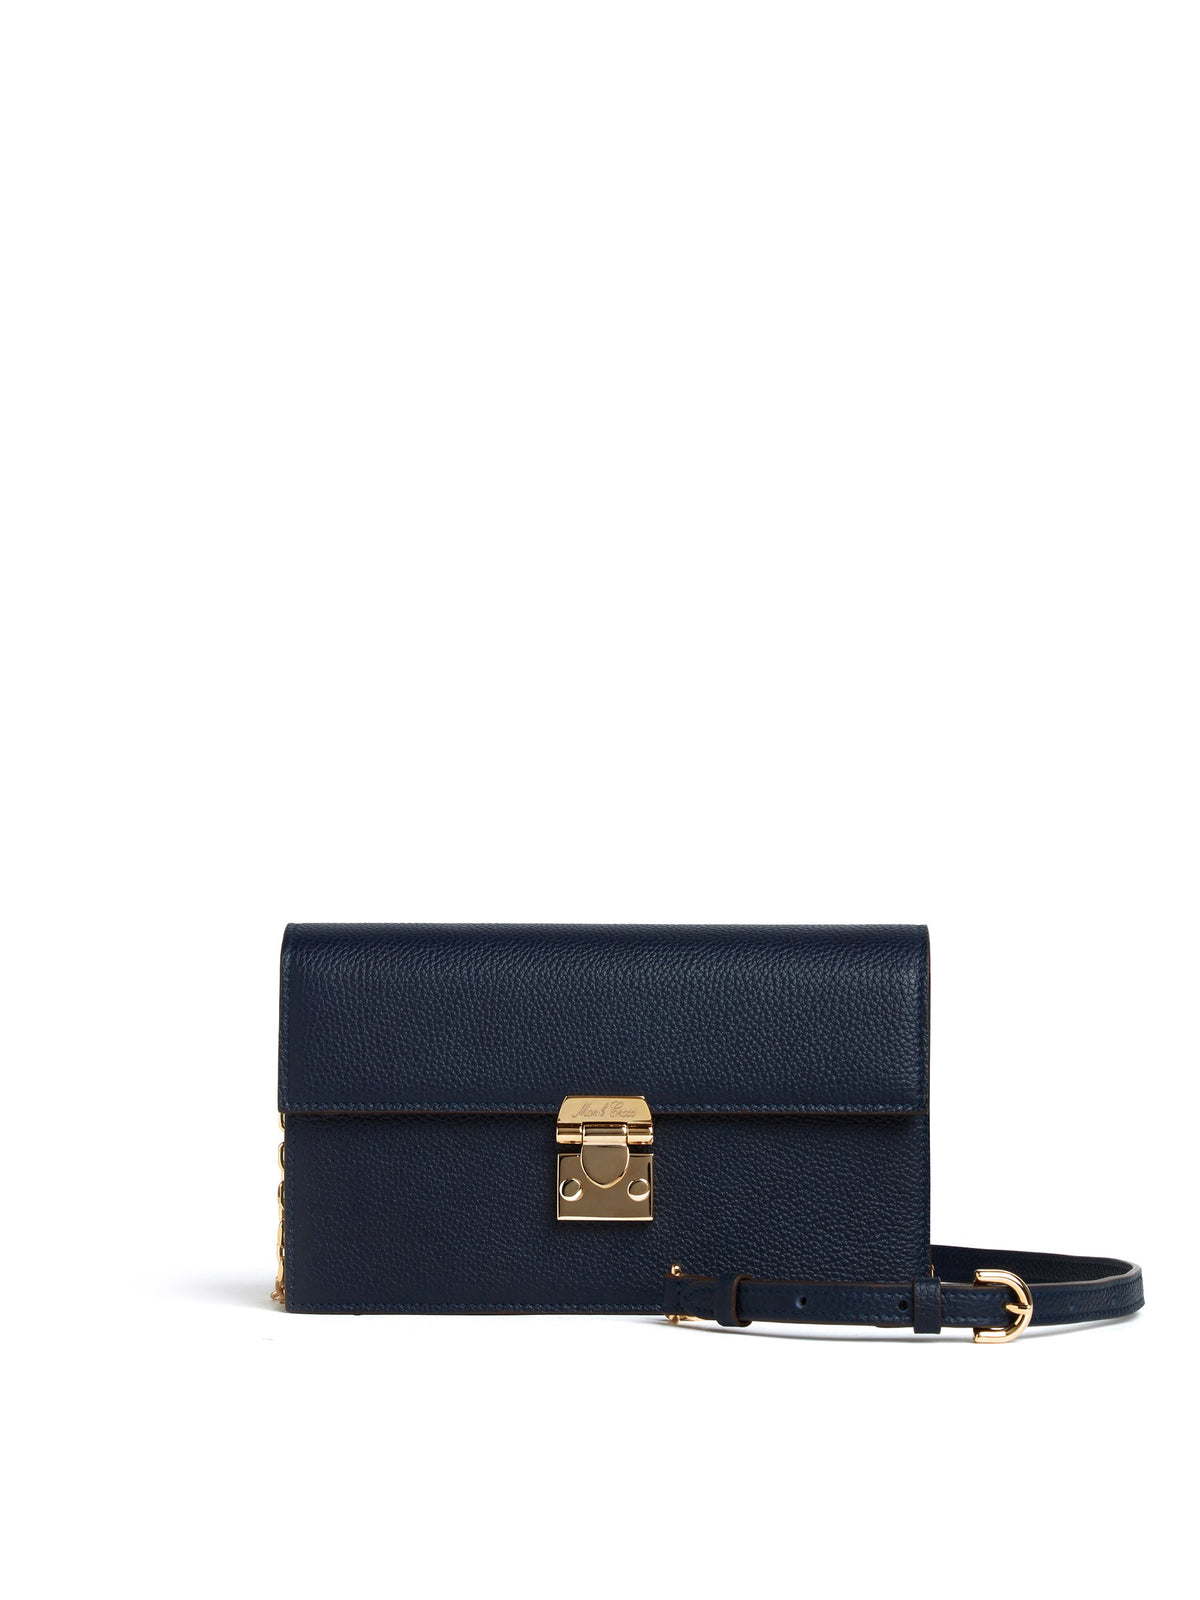 Carrie Leather Crossbody Bag